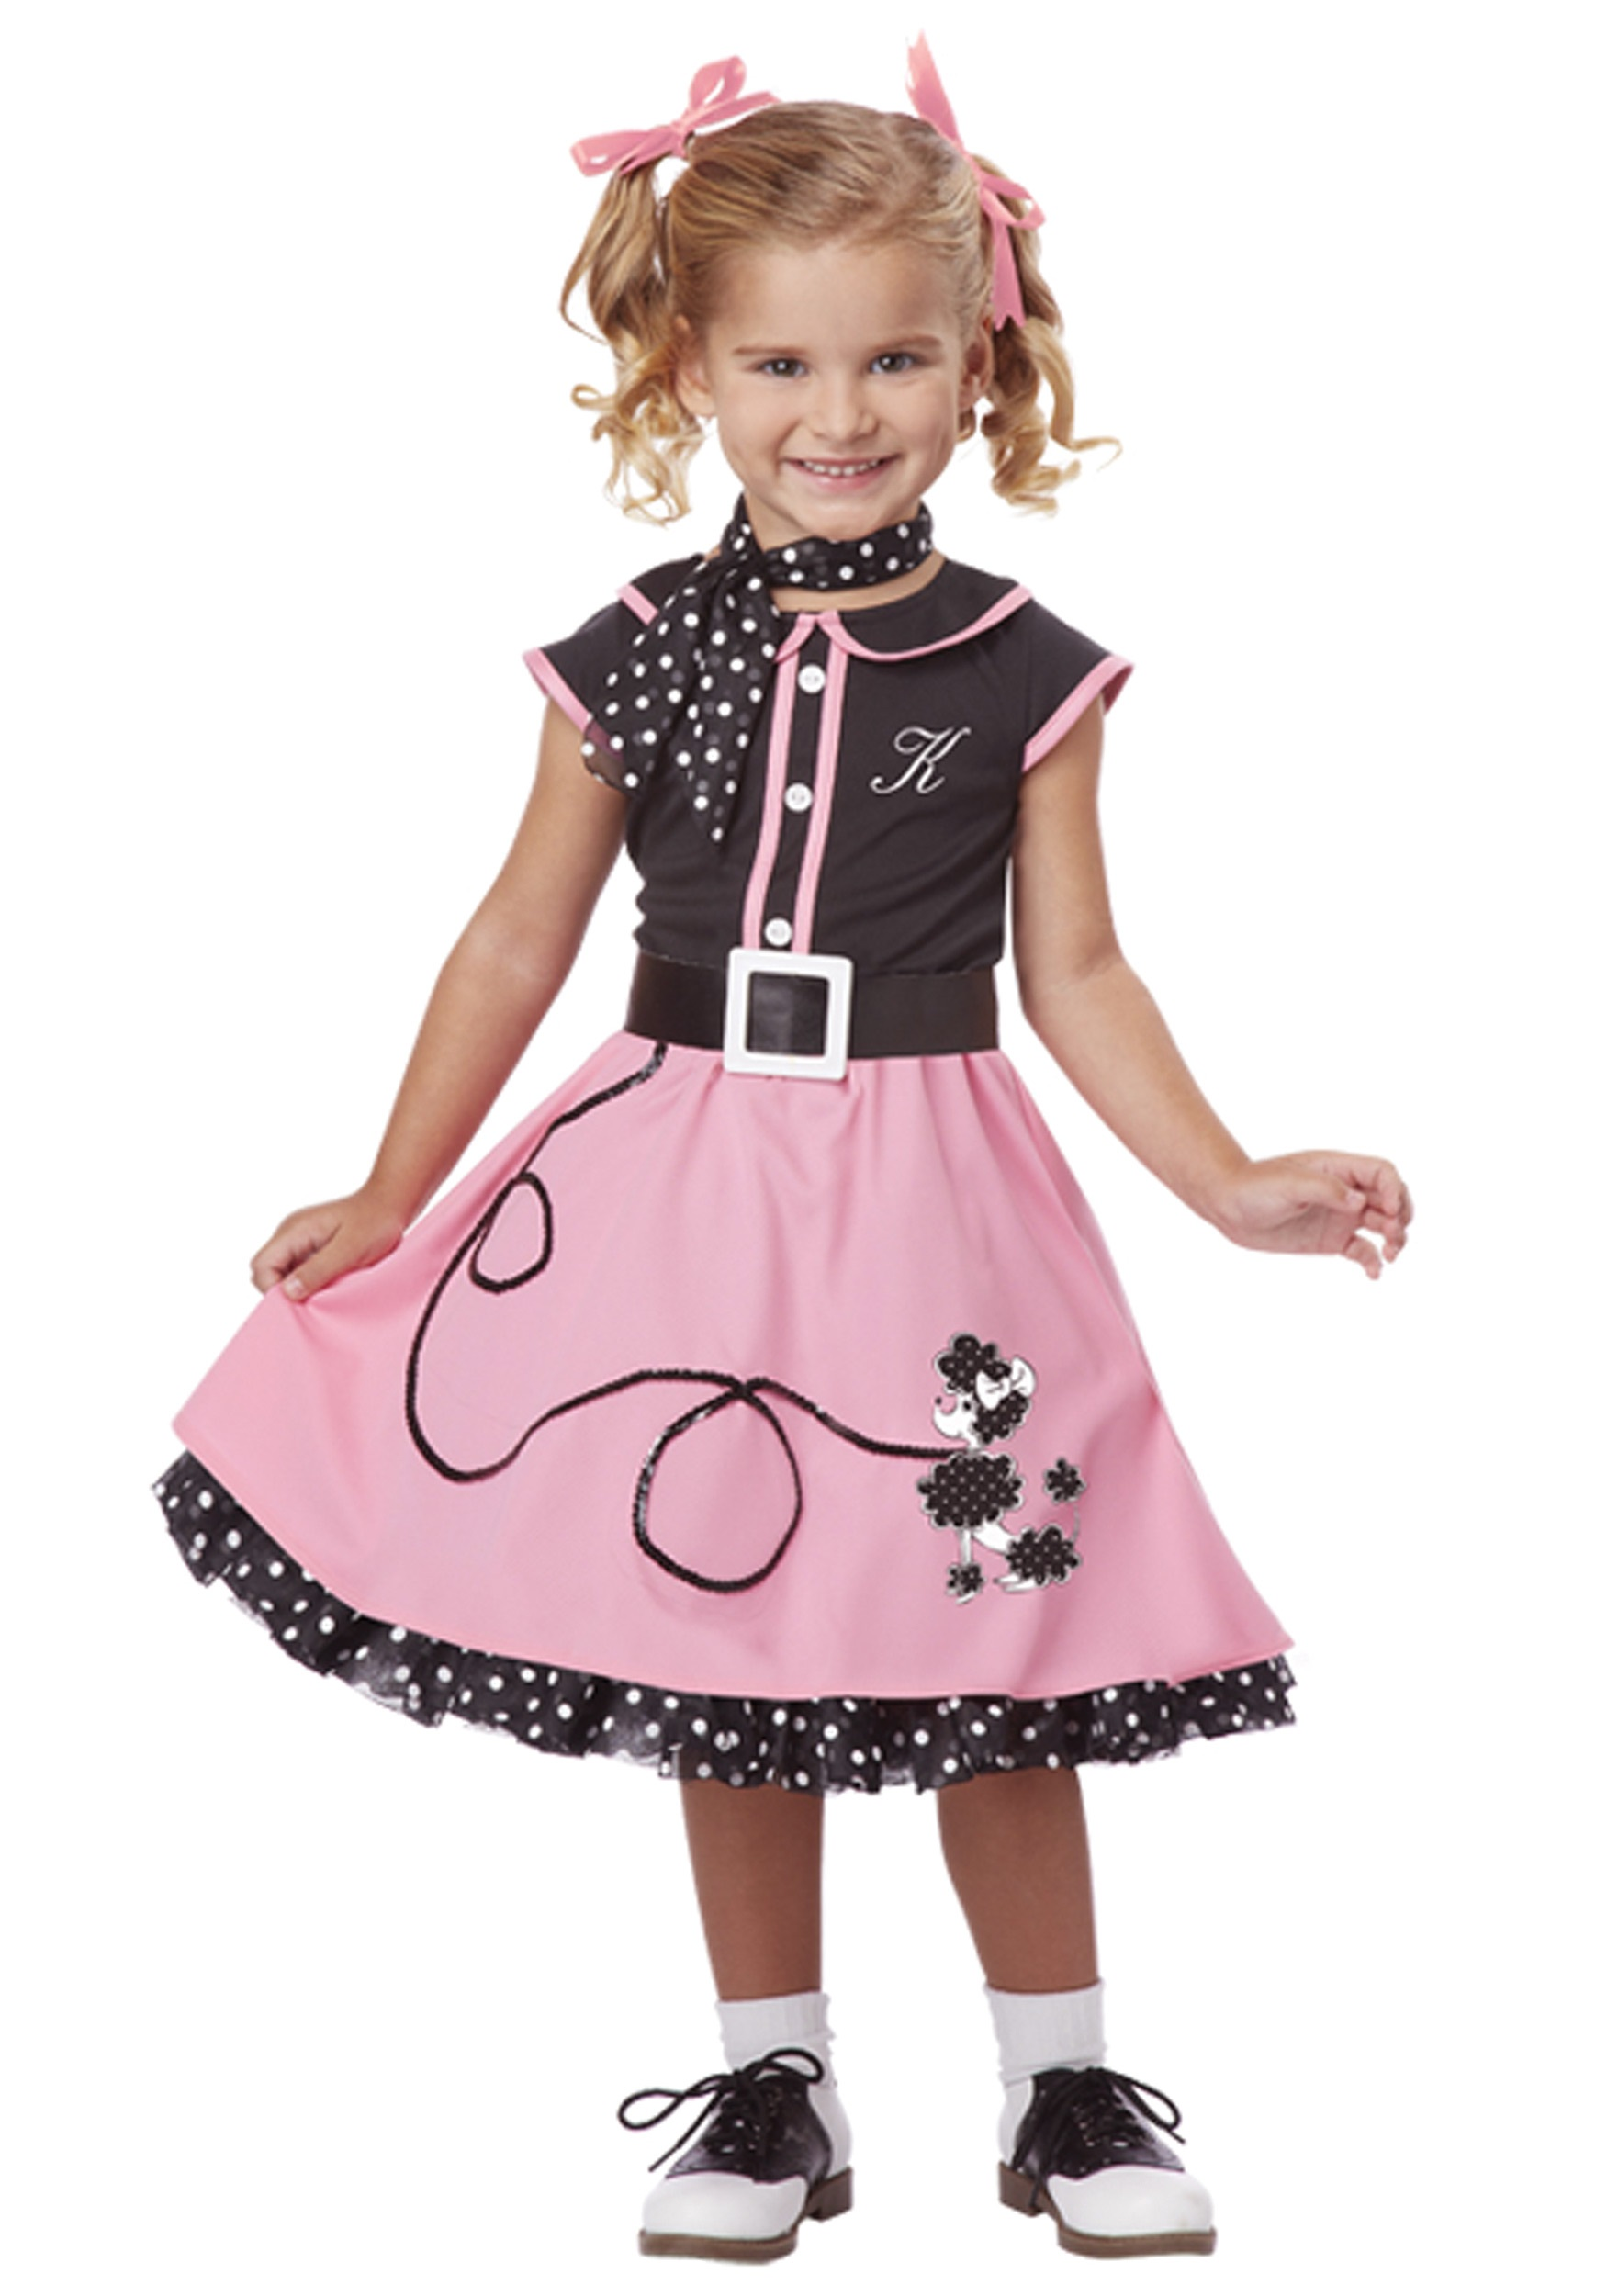 Poodle Skirt Costume Child | 50s Style Clothing | 50s Attire